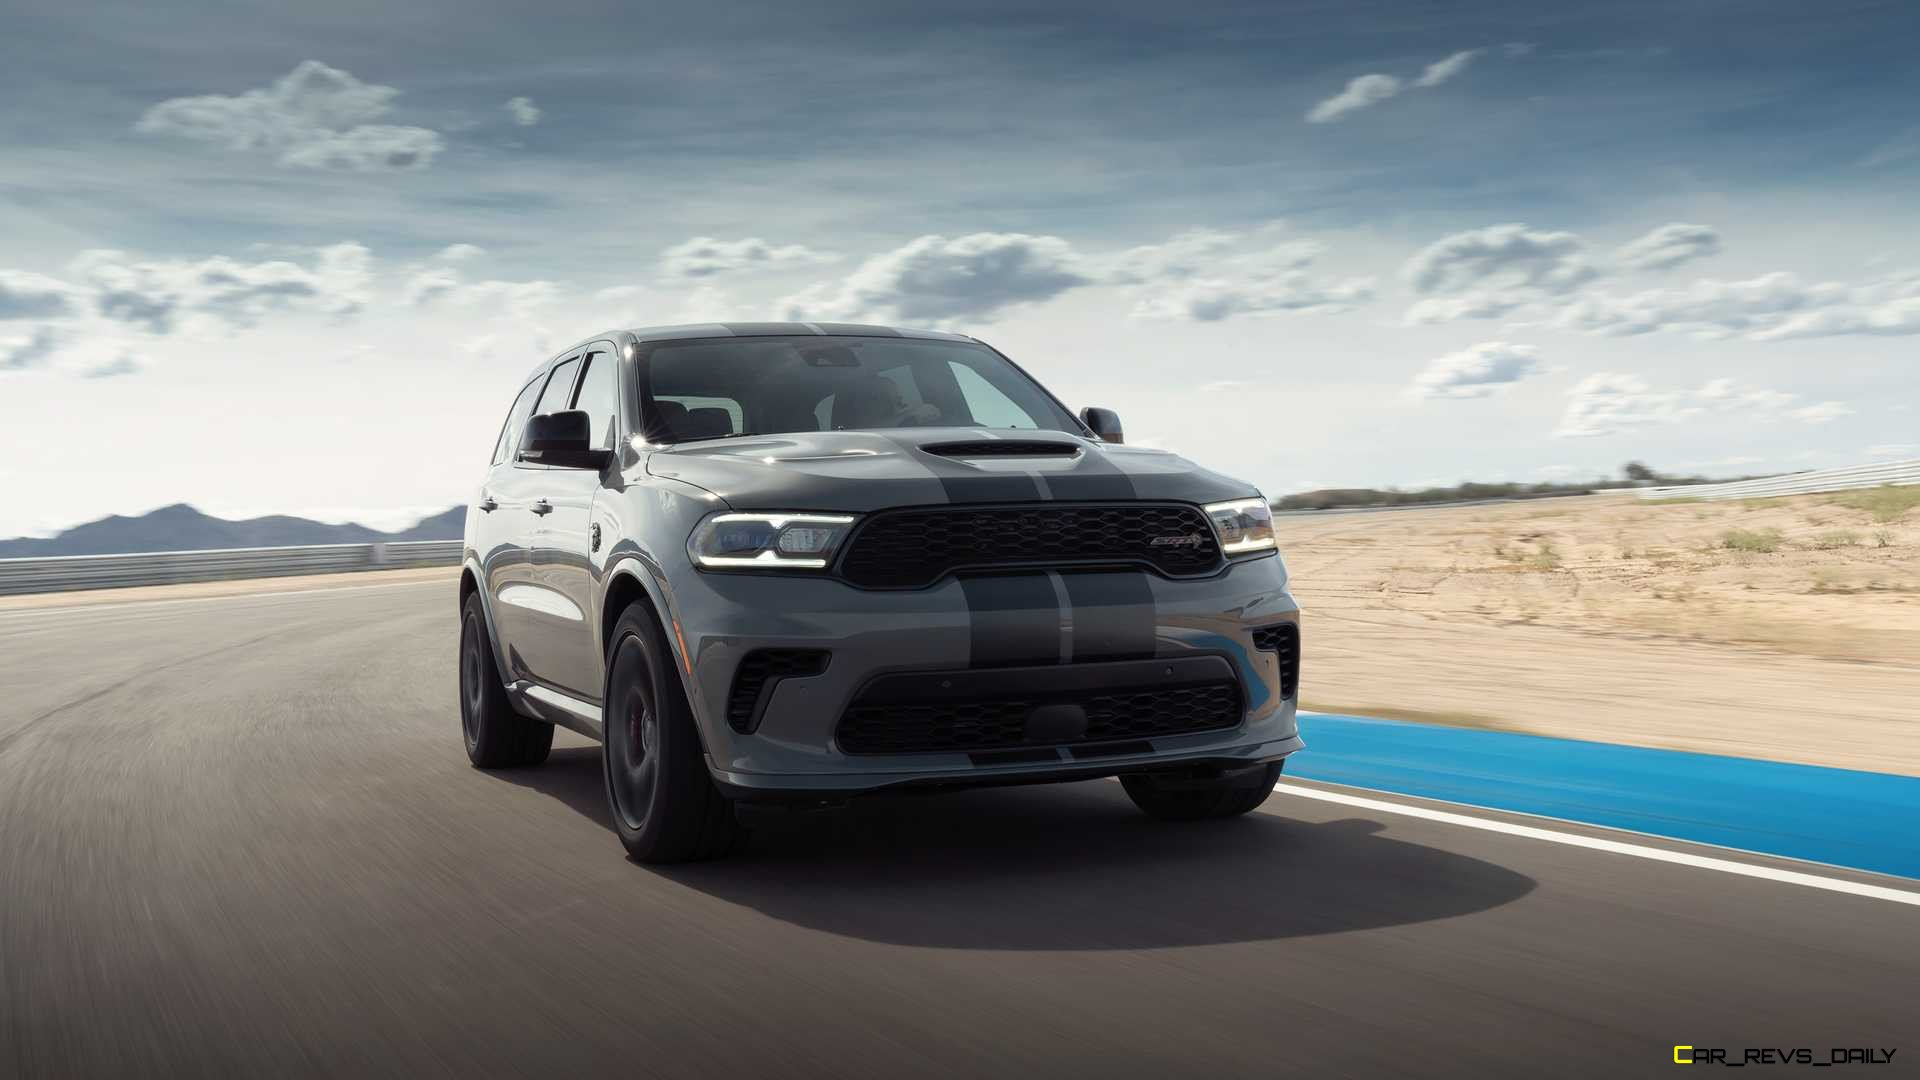 2021 Dodge Durango Srt Hellcat 17 Car Revs Daily Com